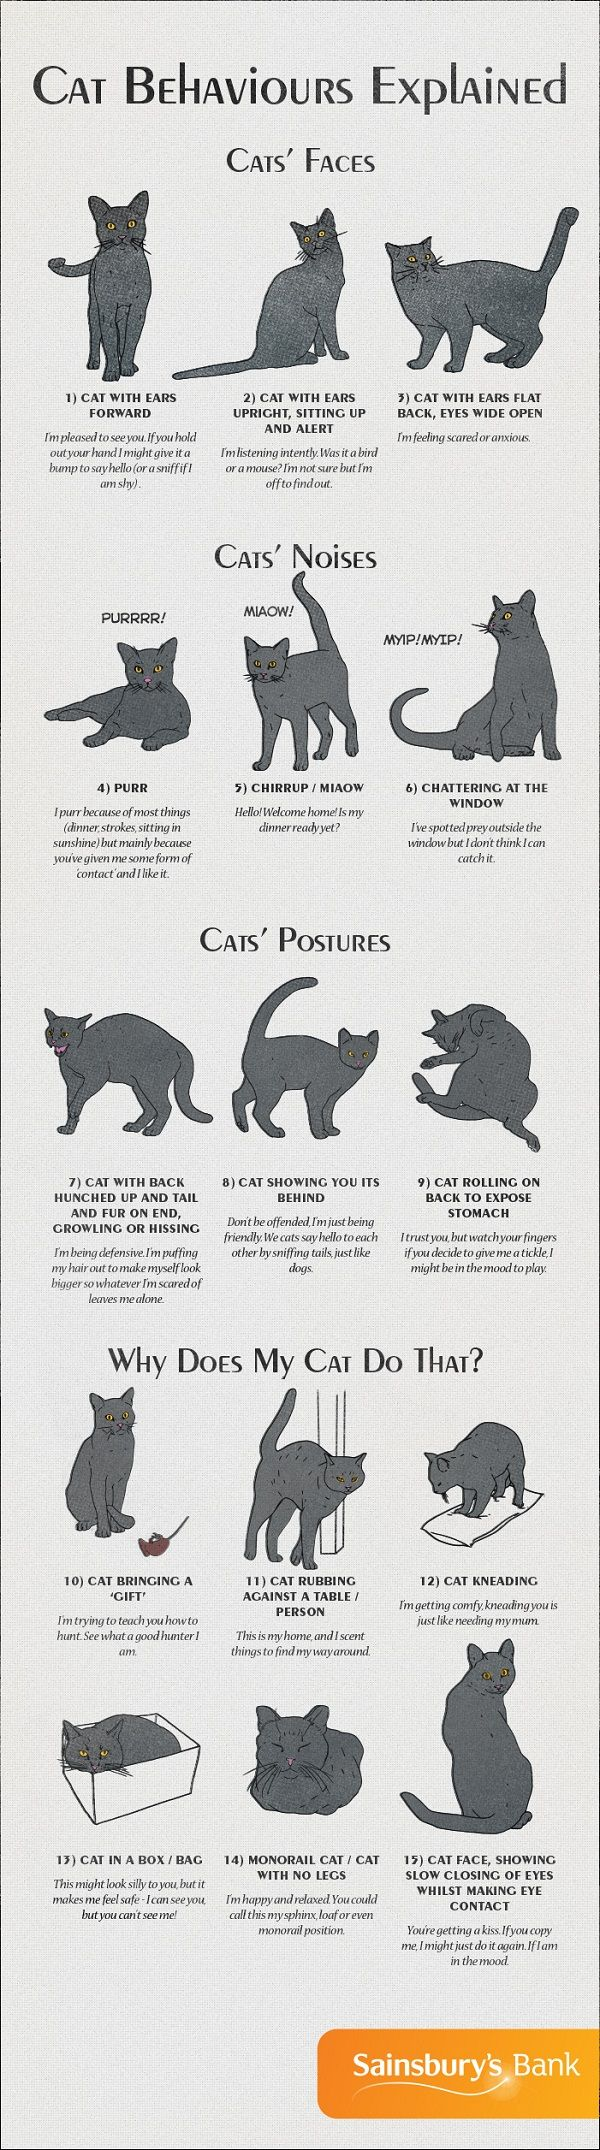 Infographic: Cat Behavior And Body Language Explained - DesignTAXI.com